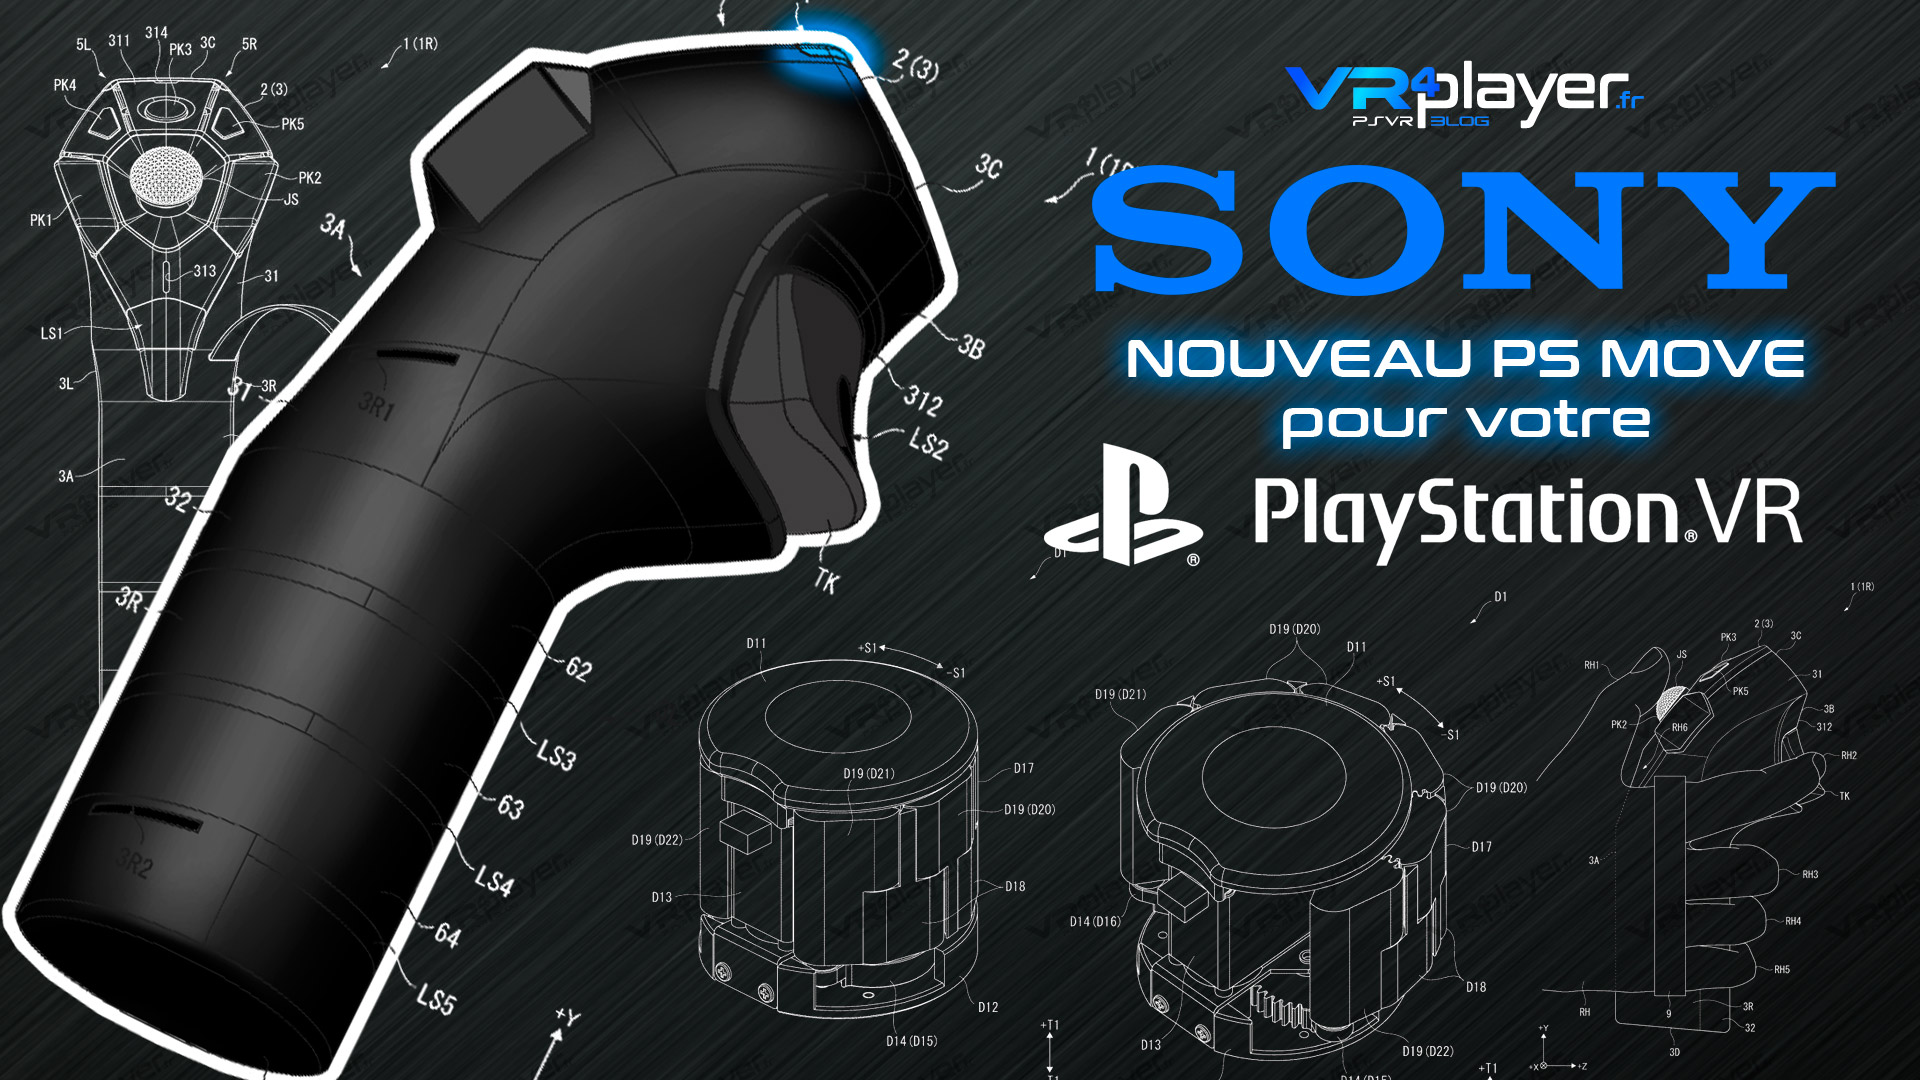 PlayStation VR New PS Move VR4player.fr